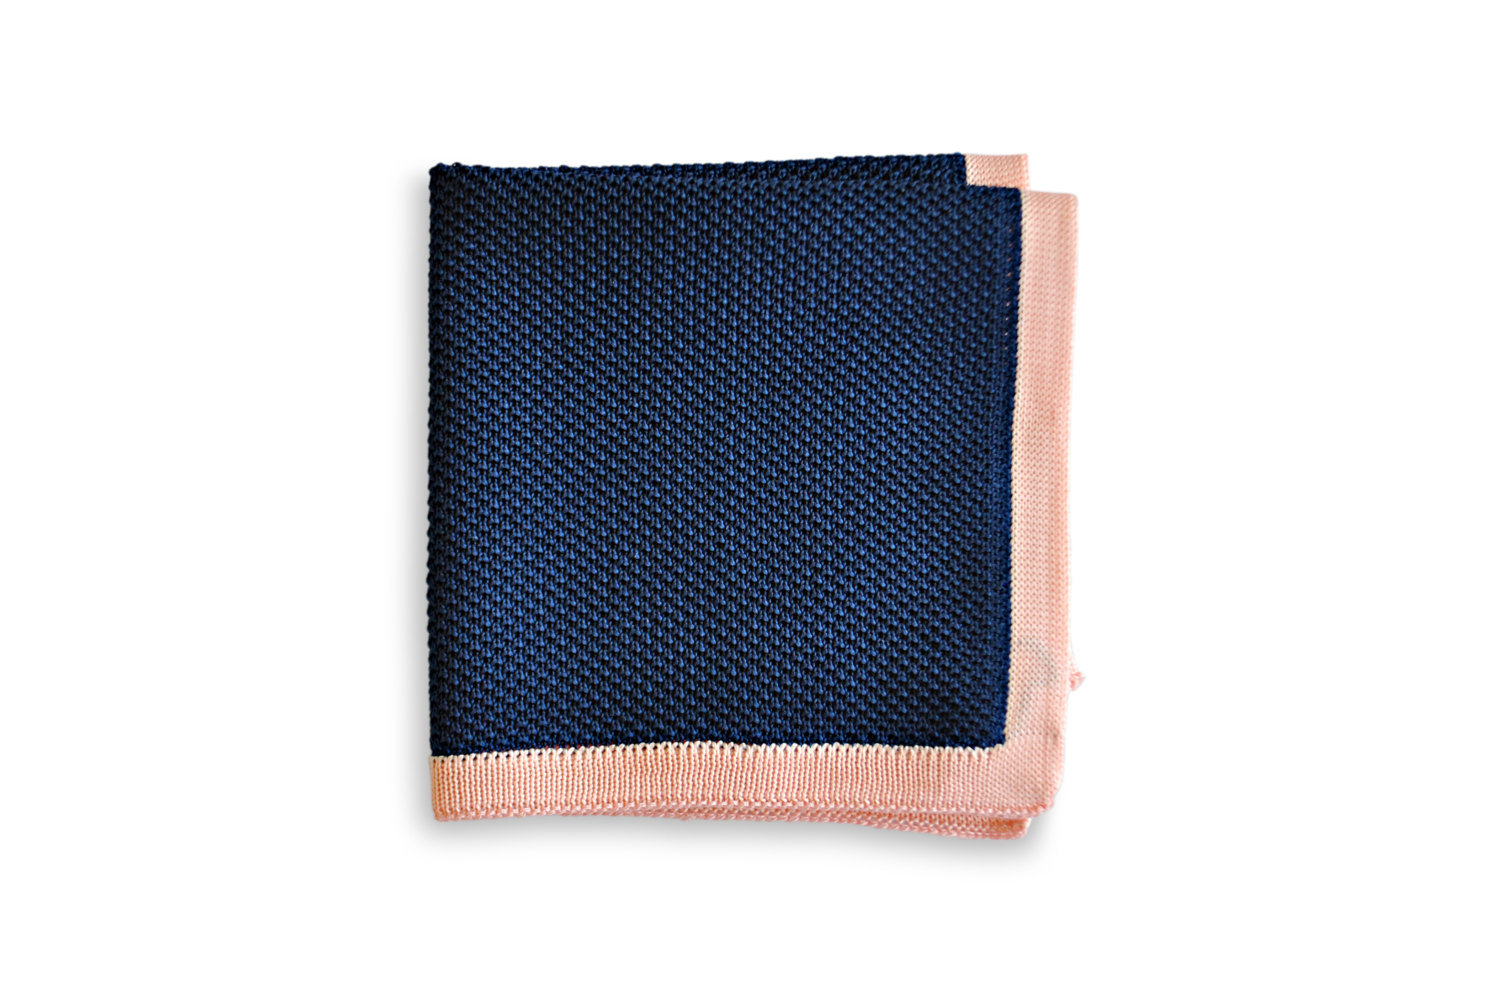 Frederick Thomas knitted Navy Blue with Pink Edging pocket square FT3165